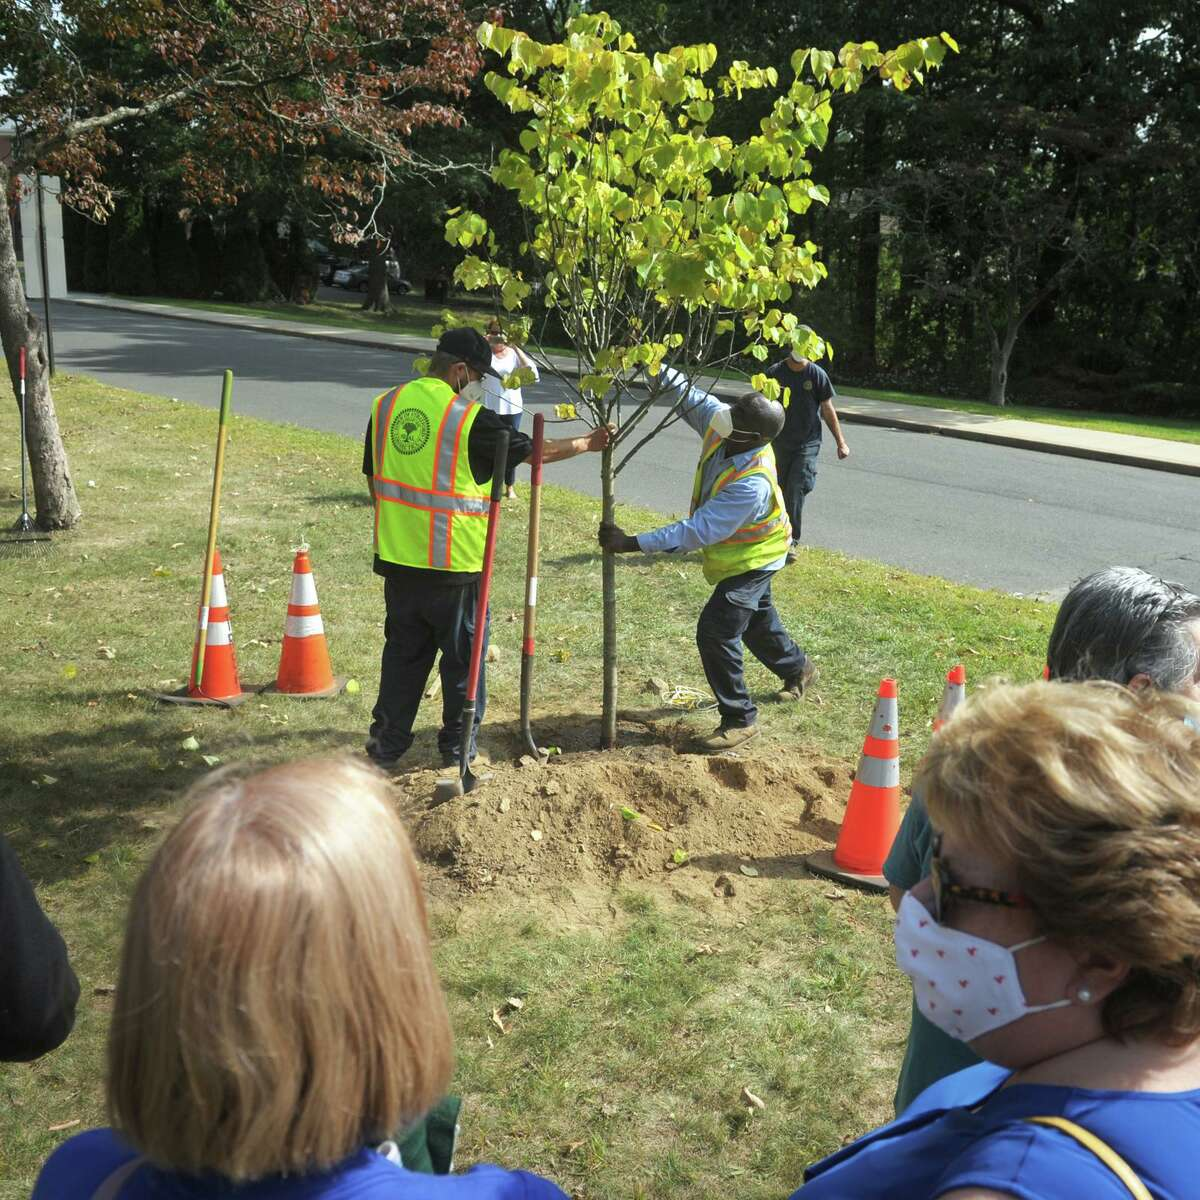 Members of the Bunnell High School Class of 1970 watch as a new eastern redbud tree is planted in front of the school in Stratford, Conn. Sept. 24, 2020. Members of the 1970 class gathered to plant the new tree to replace another tree originally planted on the first Earth Day in the spring of their graduating year.